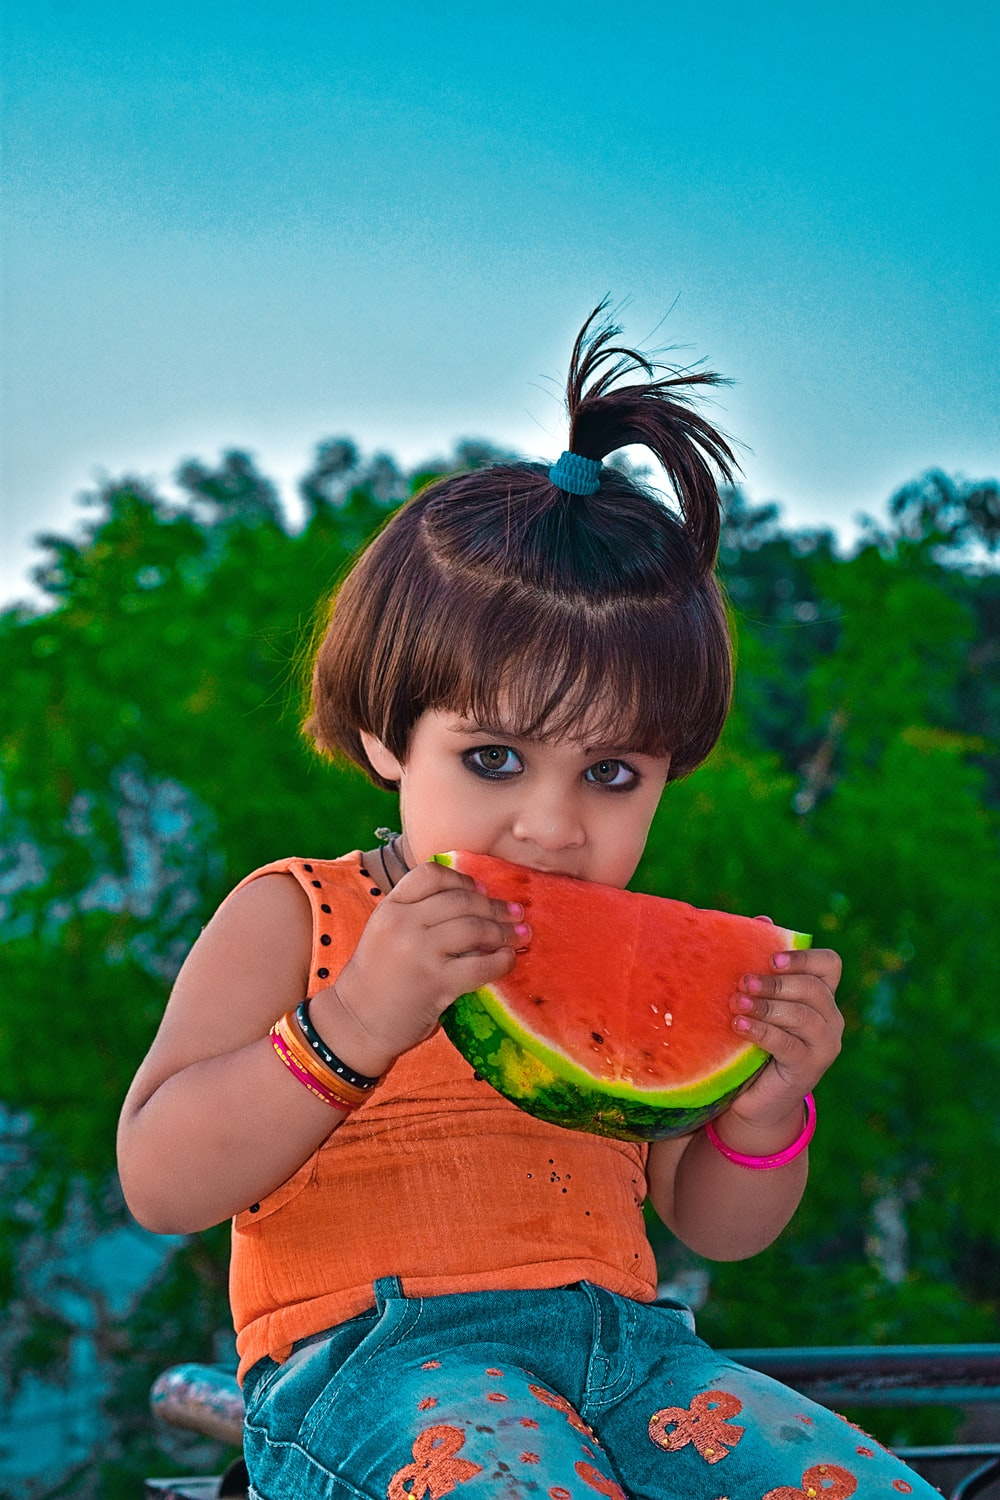 girl in pink tank top eating watermelon